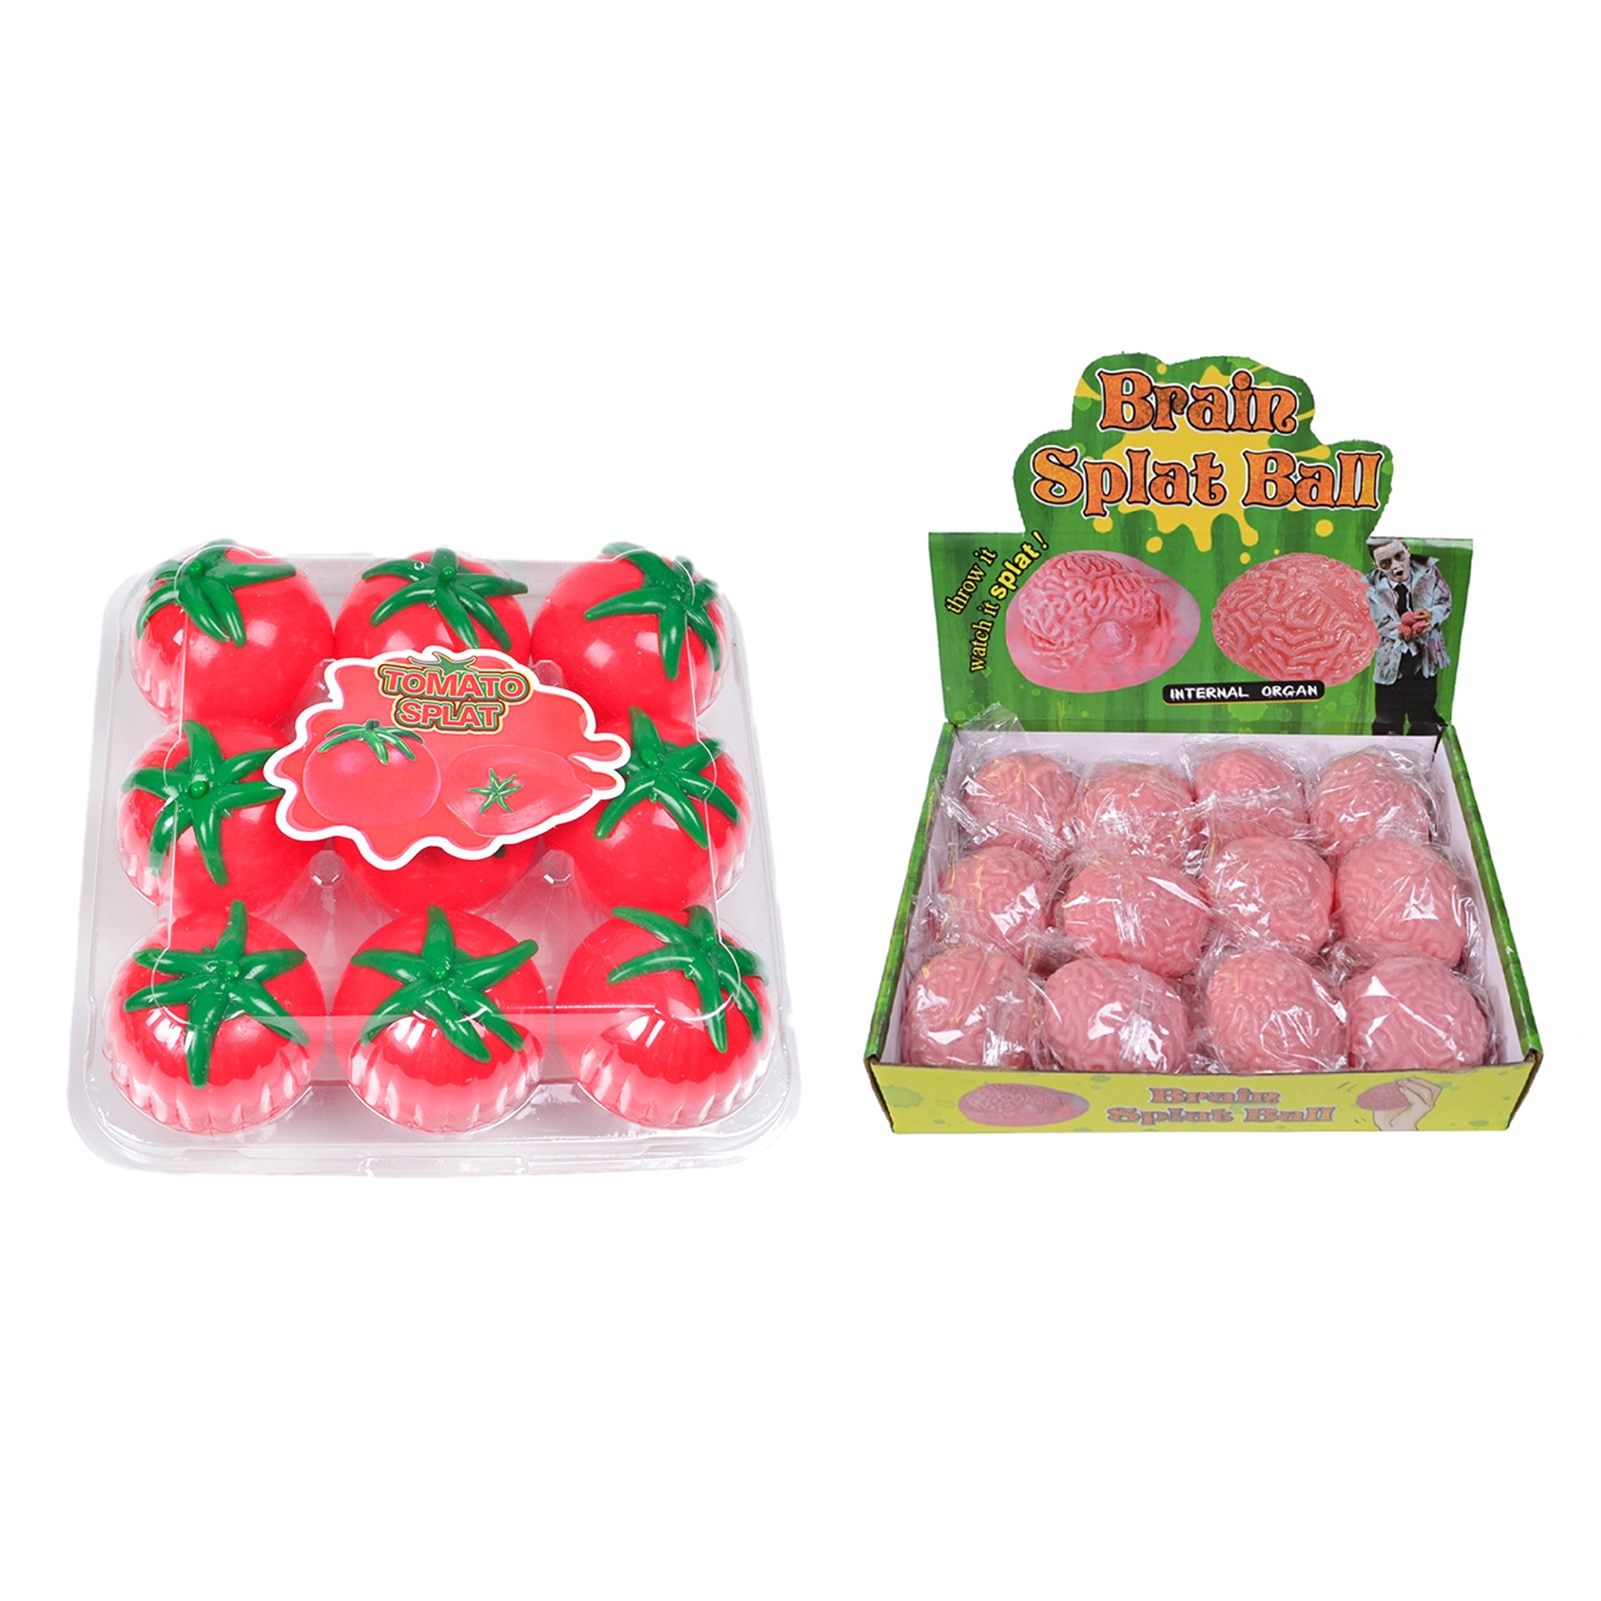 Sticky Splat Tomato Balls Simulation Fruit Food Tomato Shaped Water Squeez Ball Vent Tomato Toys Stress Reliever Sensory Toy